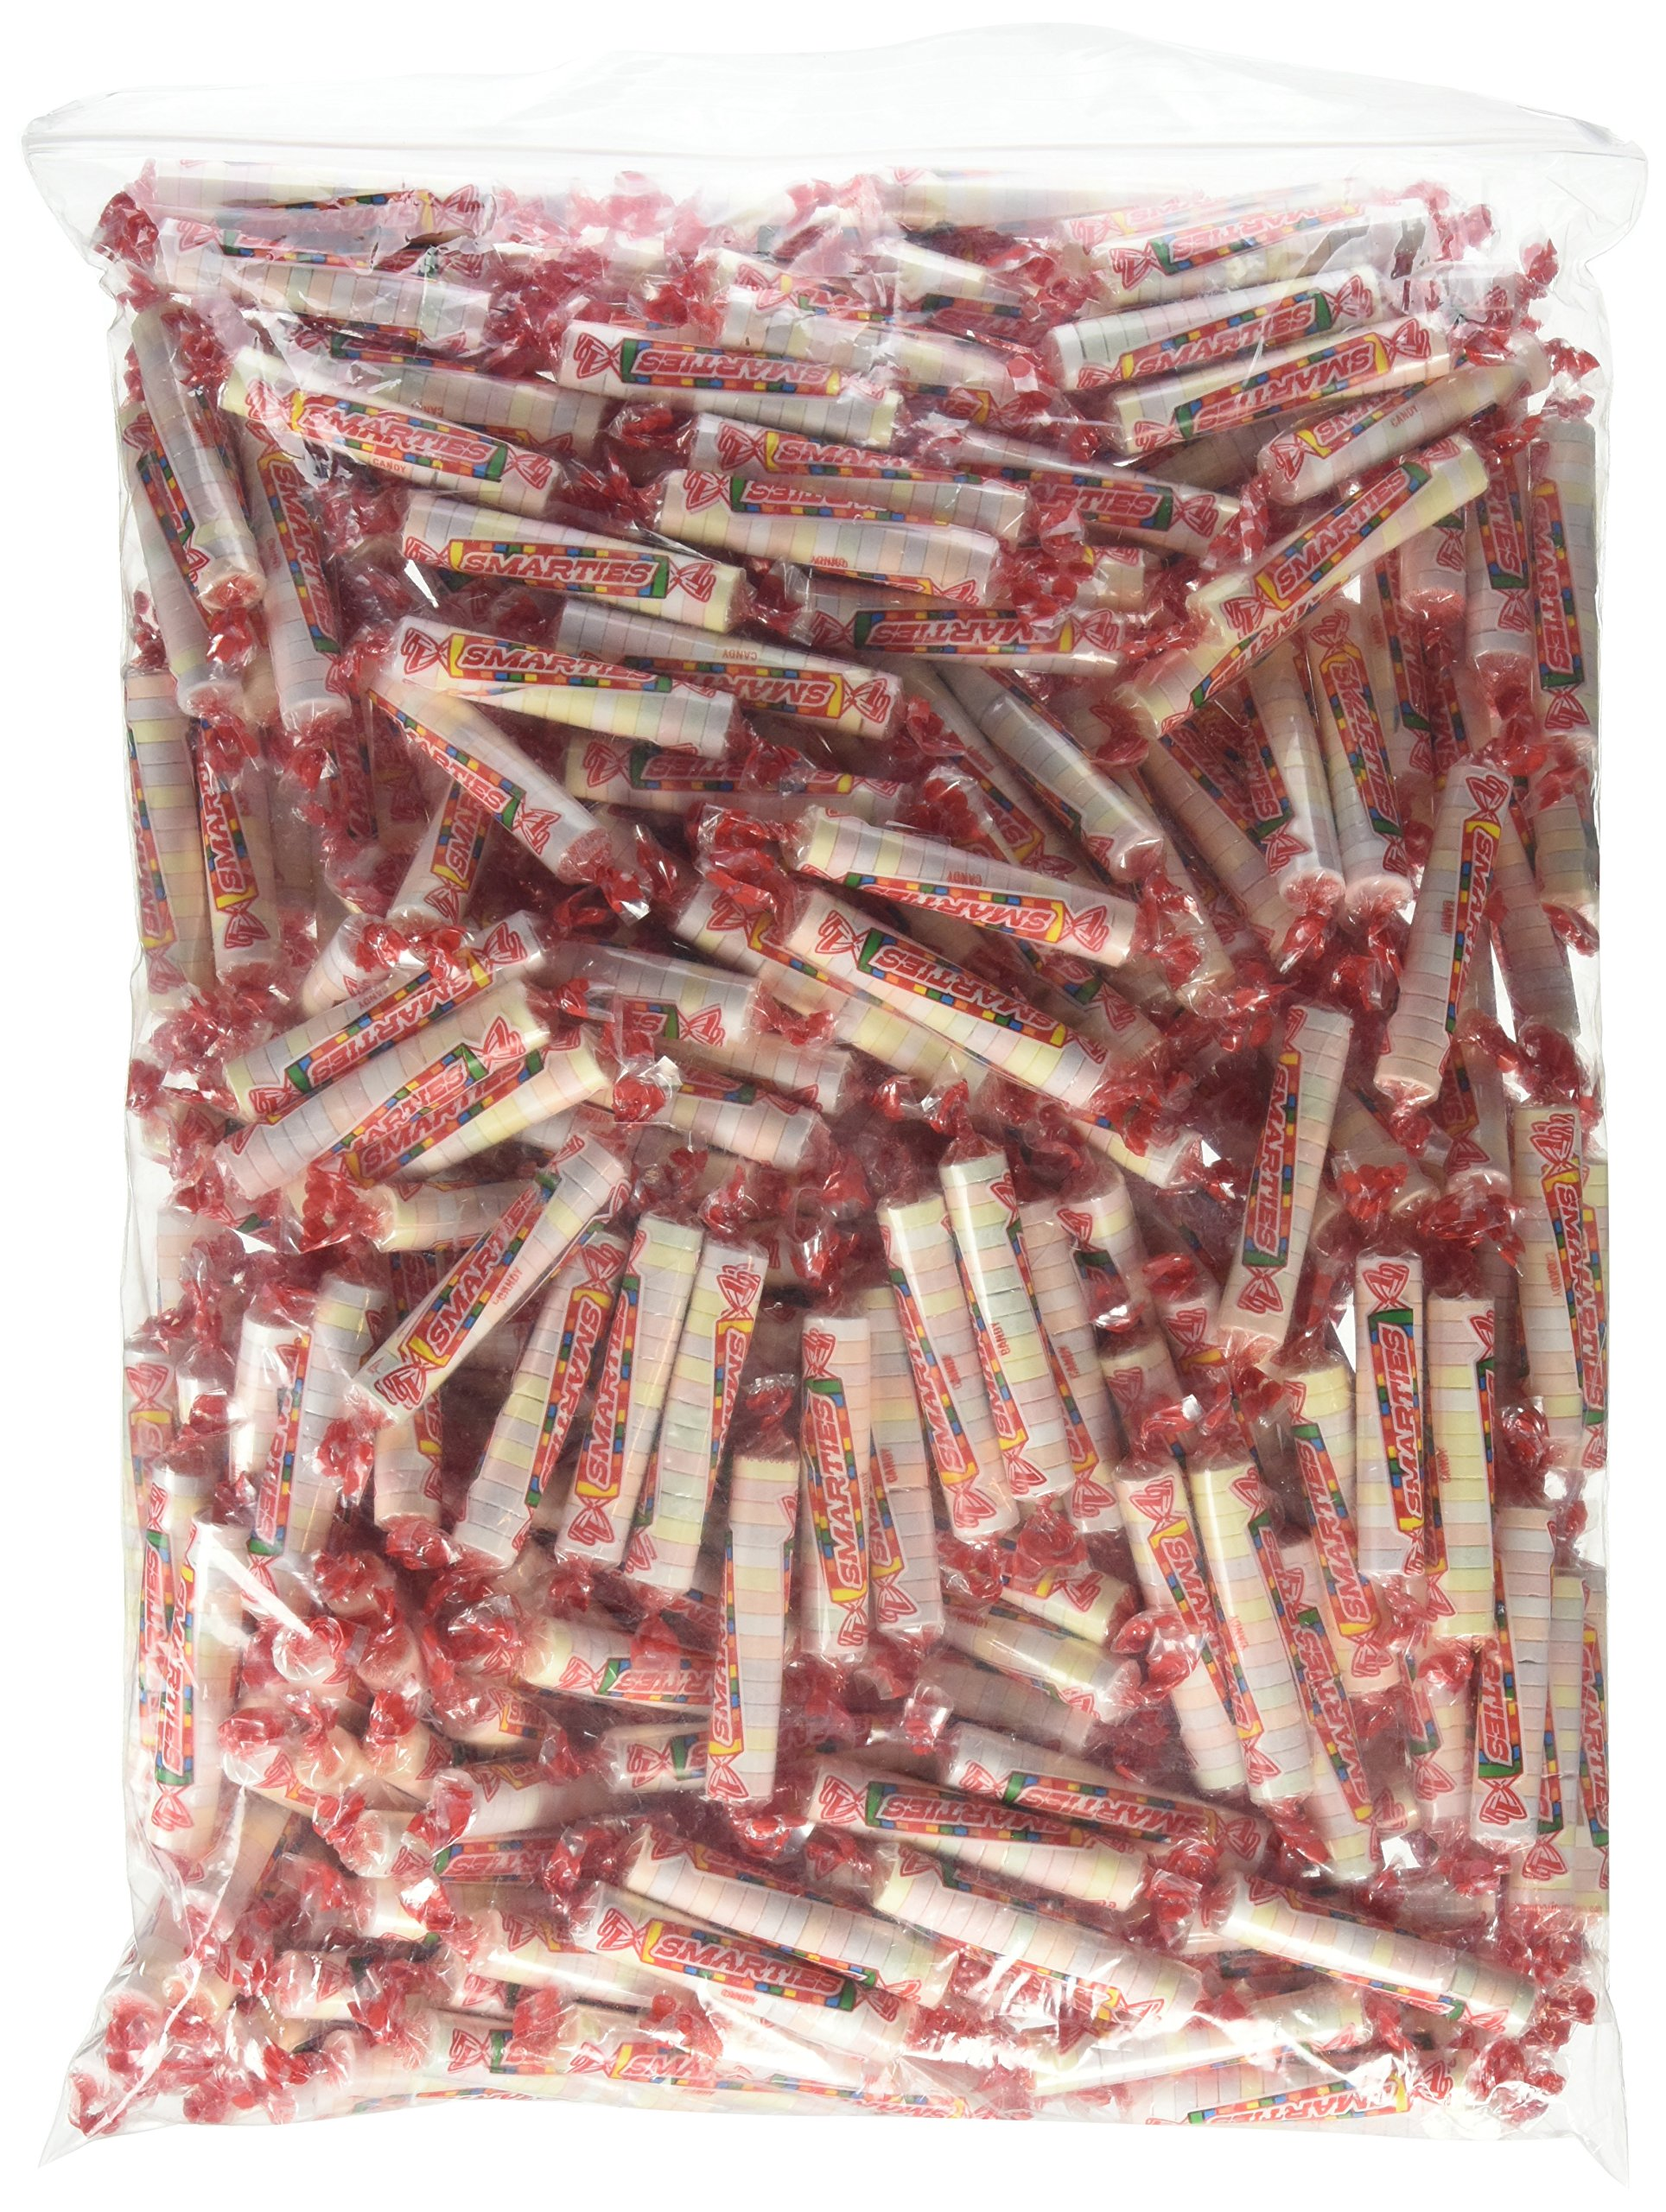 Cede Smarties Bulk 10 LBS. Case by Smarties Candy (Image #1)